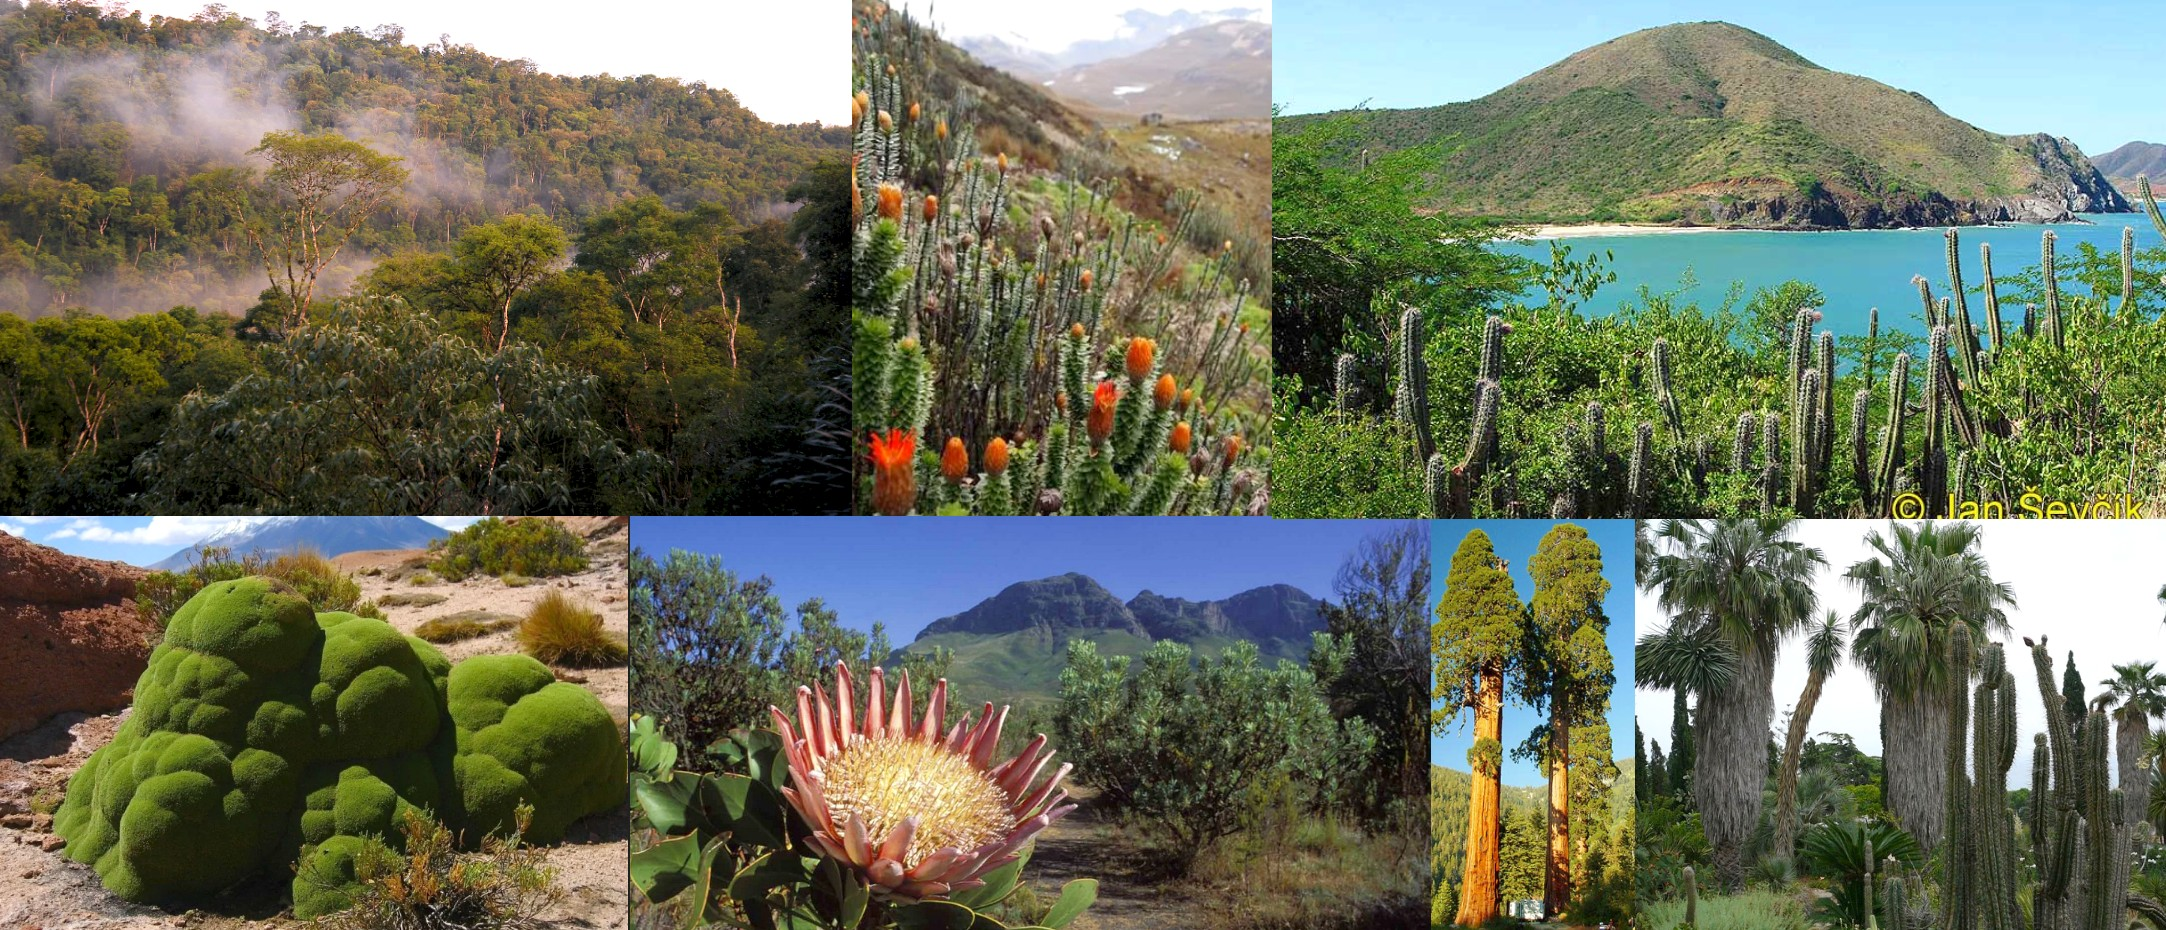 Flora of South America